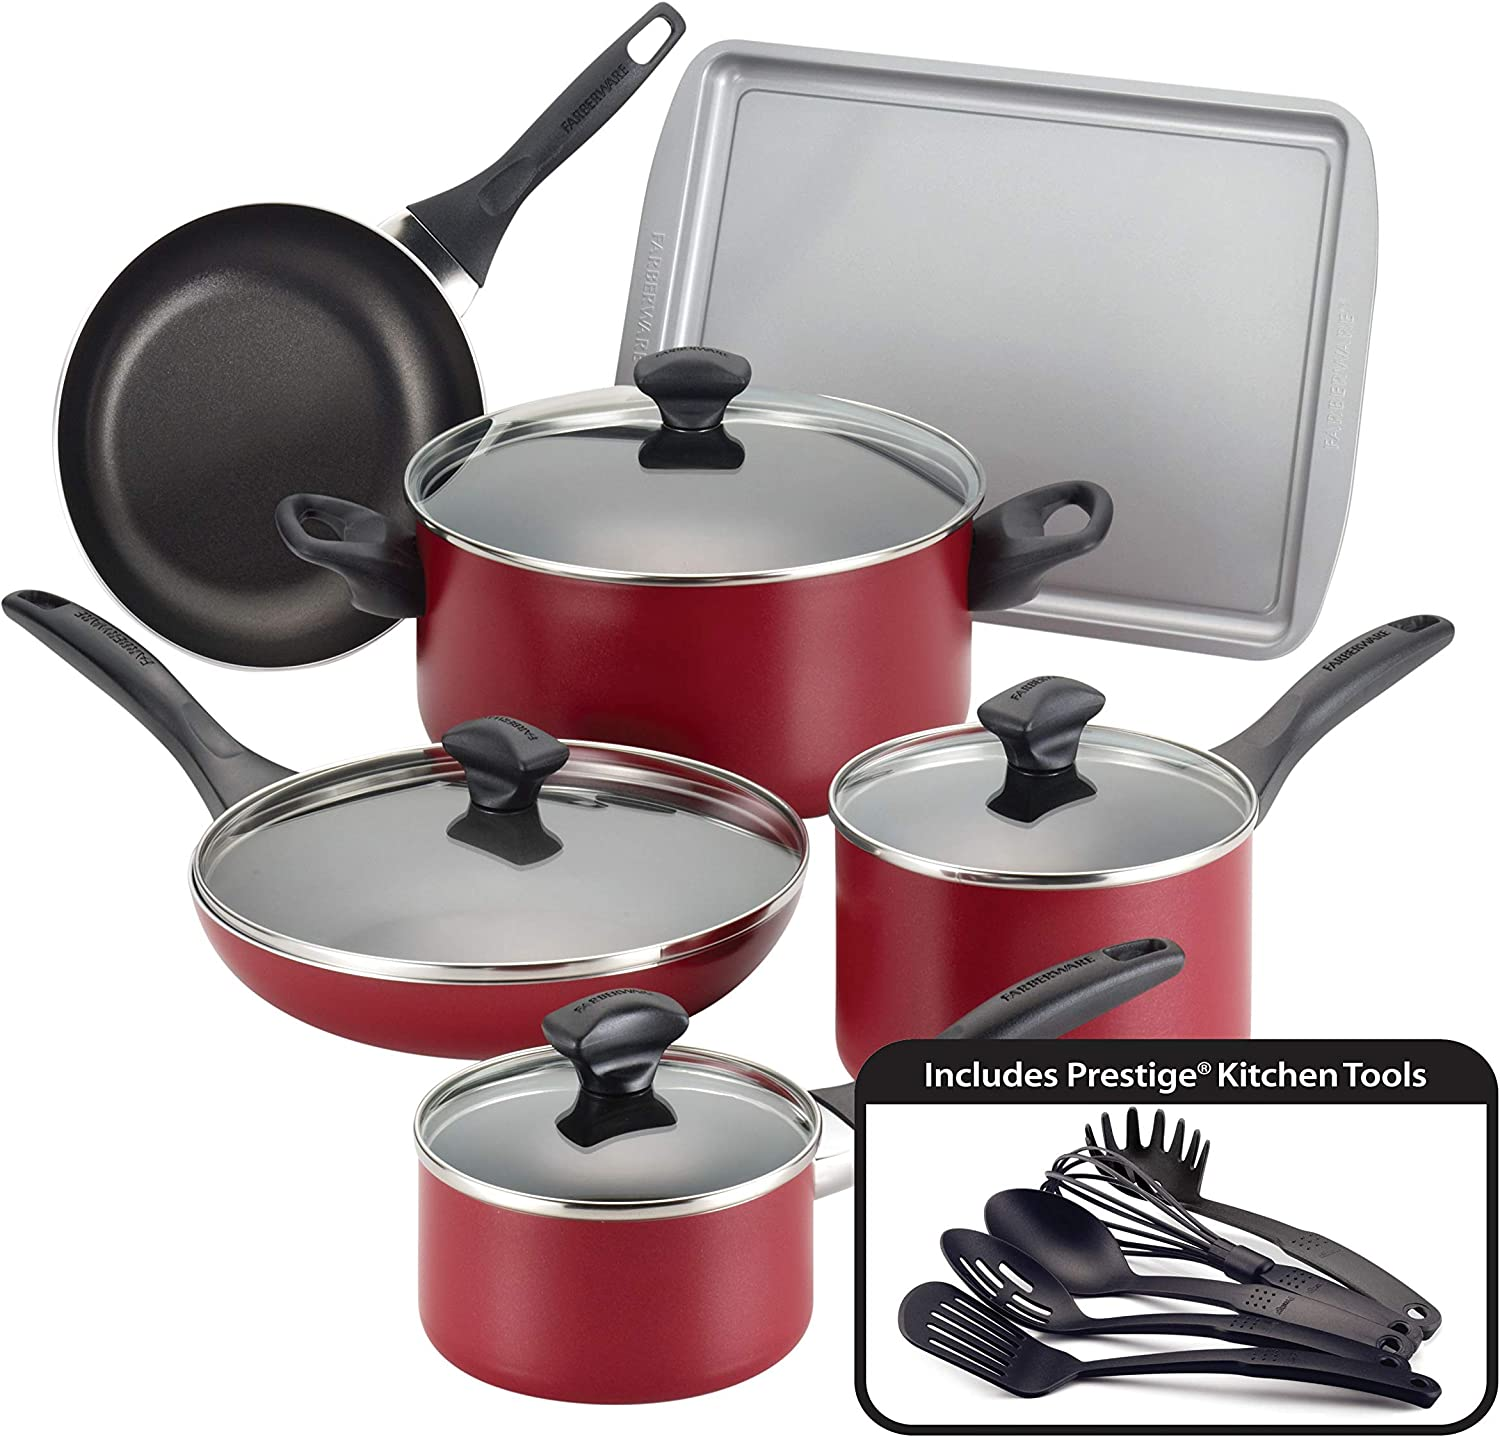 Faberware Red FARBERWARE Dishwasher Safe NONSTICK 11pce cookware, Tools and bakware Set